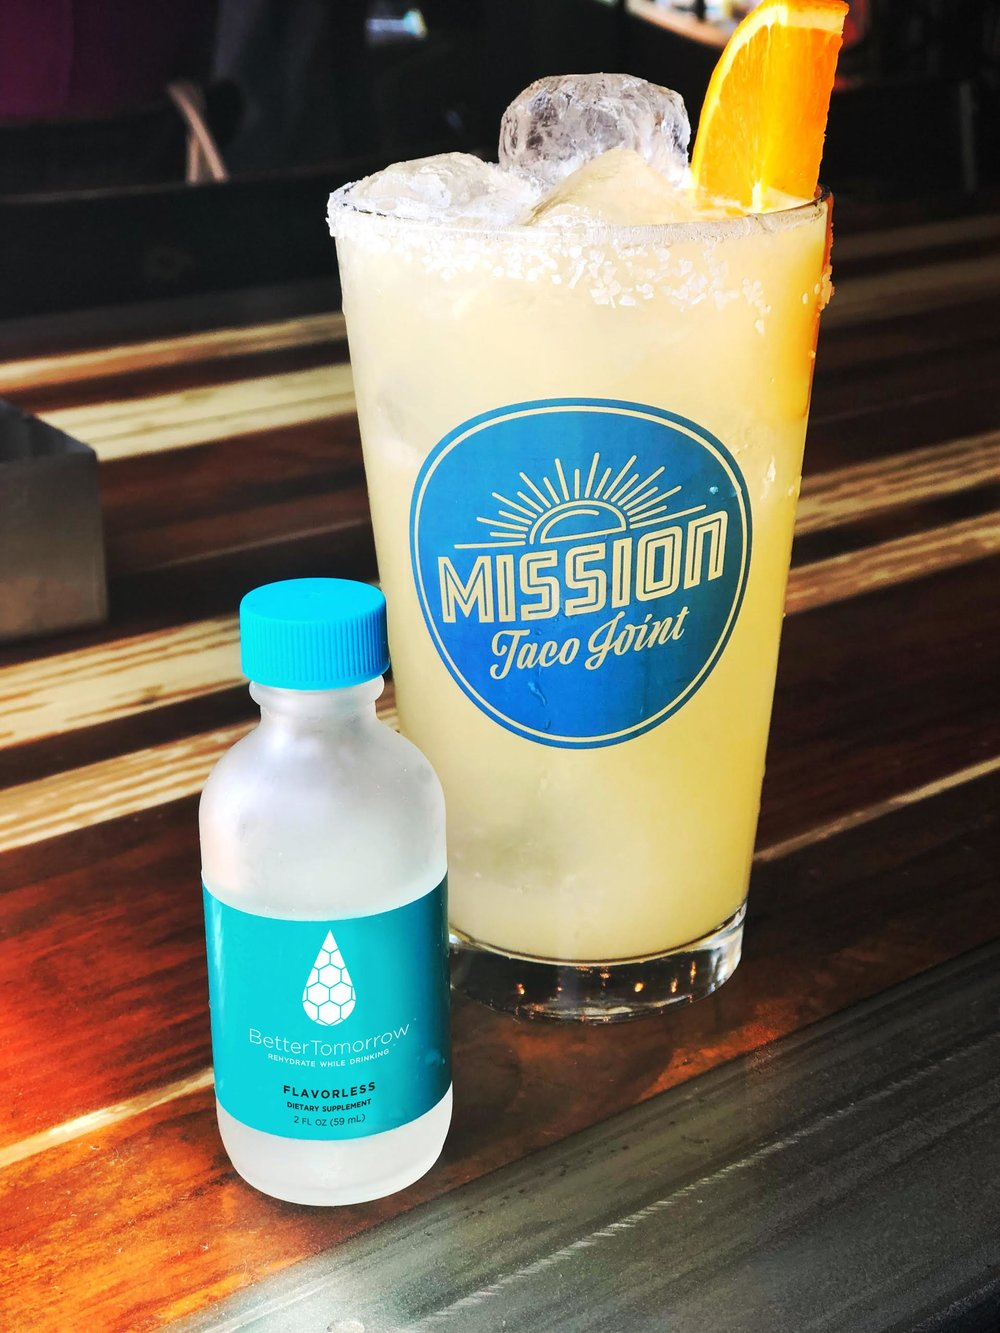 You haven't had a margarita like this before. - Now serving at all Mission Taco Joints in St. Louis, MO! Ask your bartender how to make any drink Better.